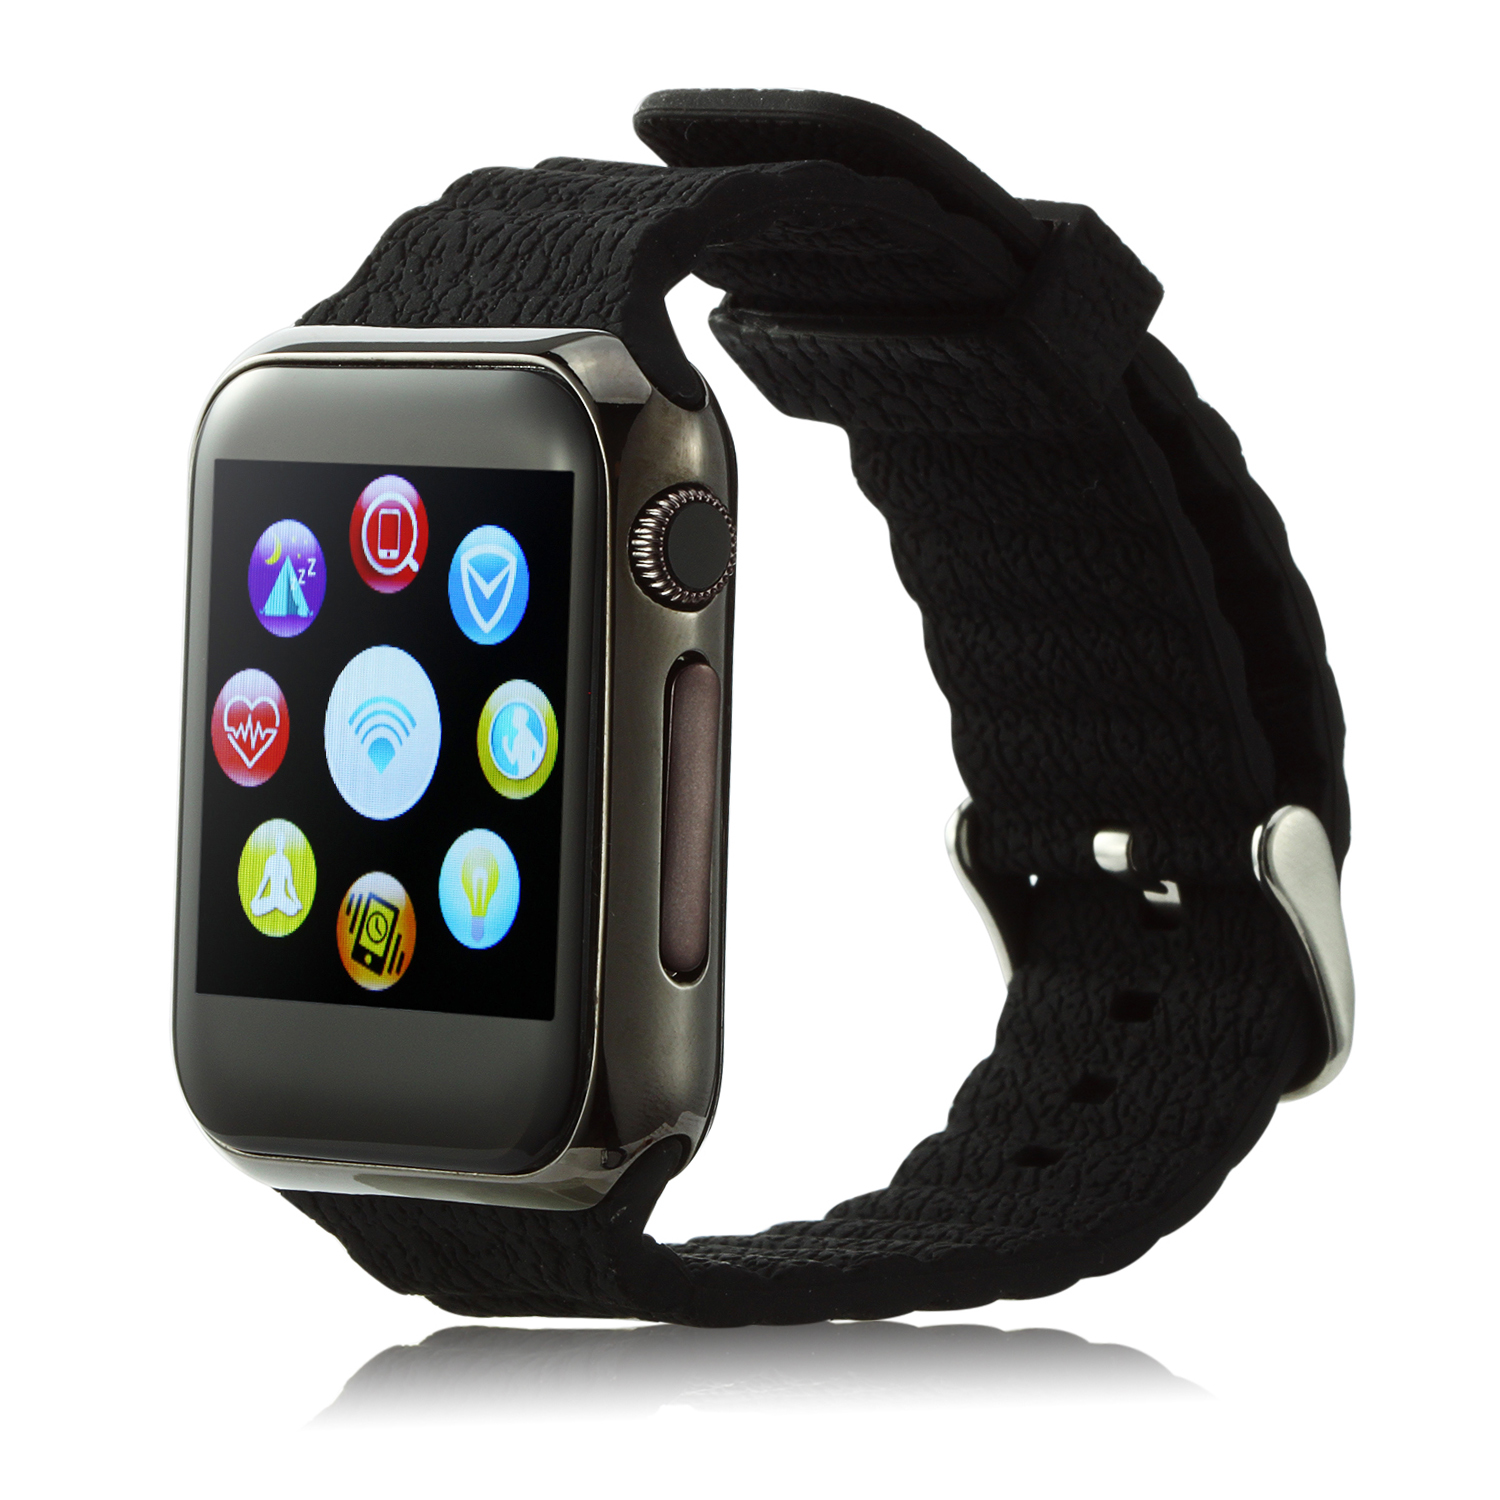 Marknano V9 Smart Watch Phone Bluetooth Watch 1.54 inch Touch Screen Heart Rate Black